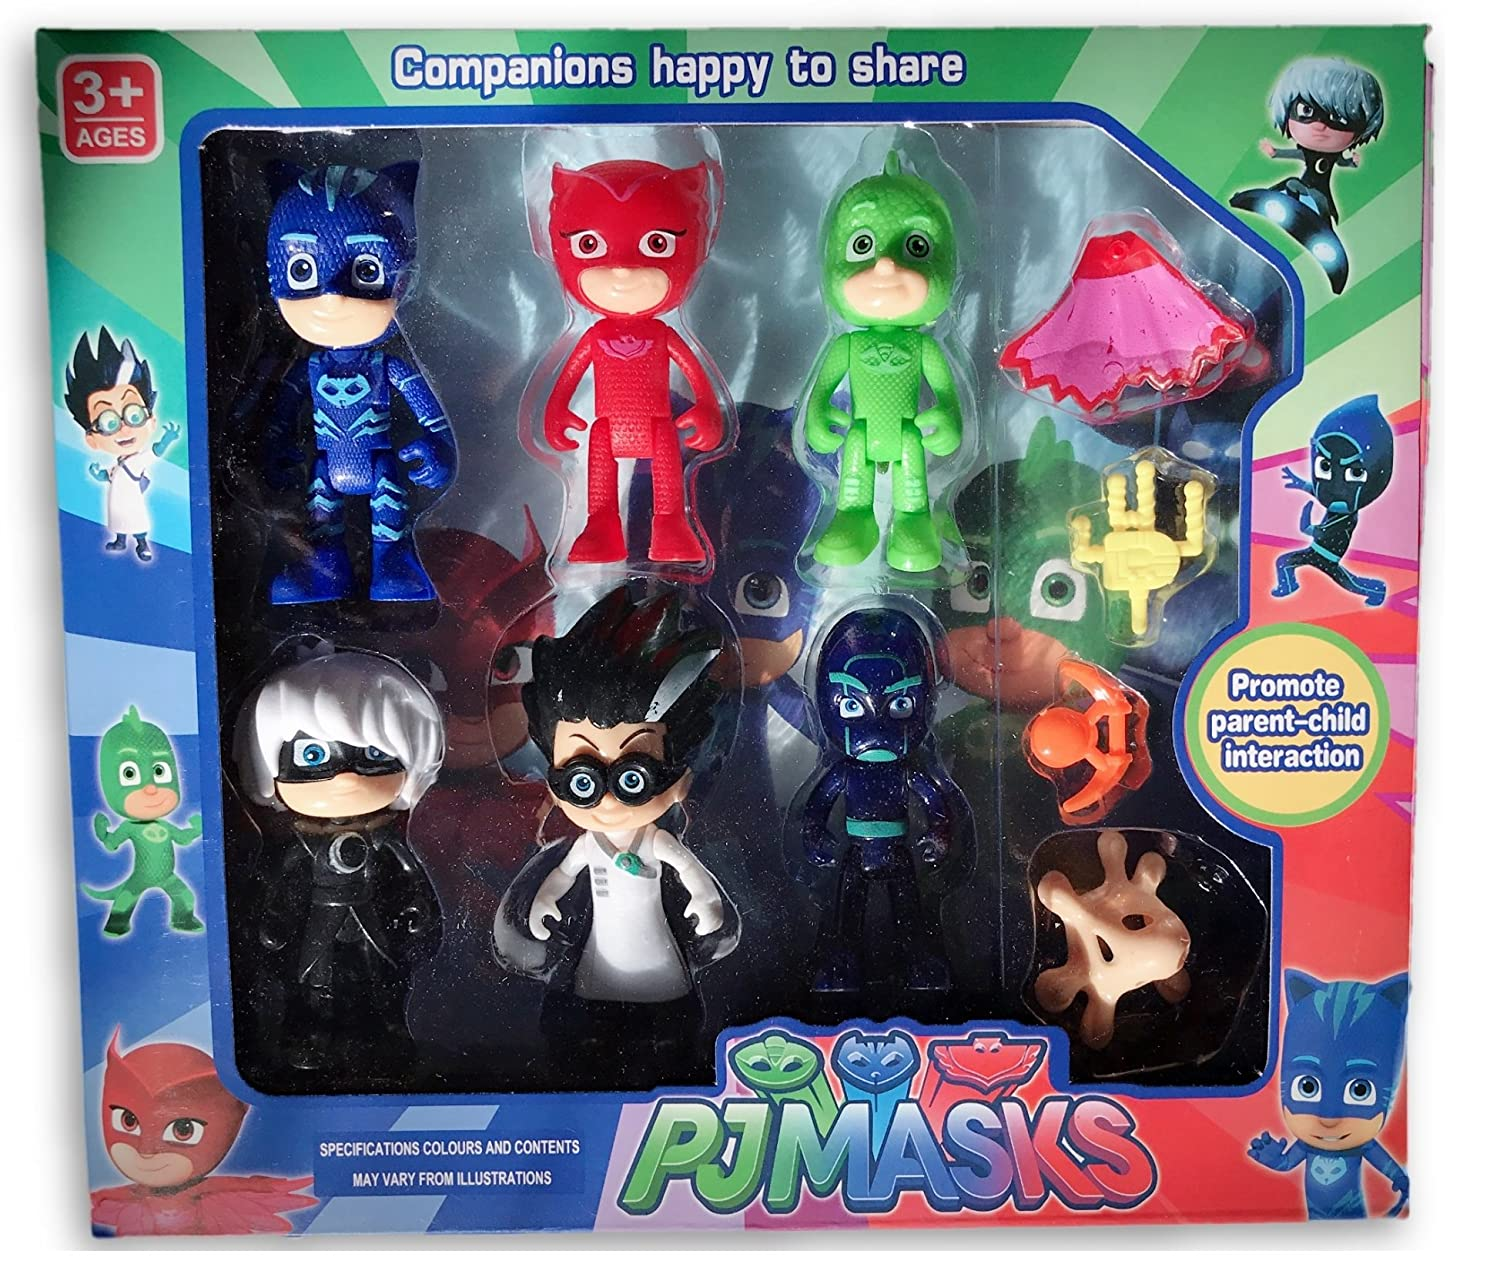 Amazon.com: Abbros PJ Masks Action Mini Figures Play Set Birthday Party Supplies Bundle 6 Pack - 3 inch - Catboy, Owlette, Gekko, Romeo, Luna Girl, ...